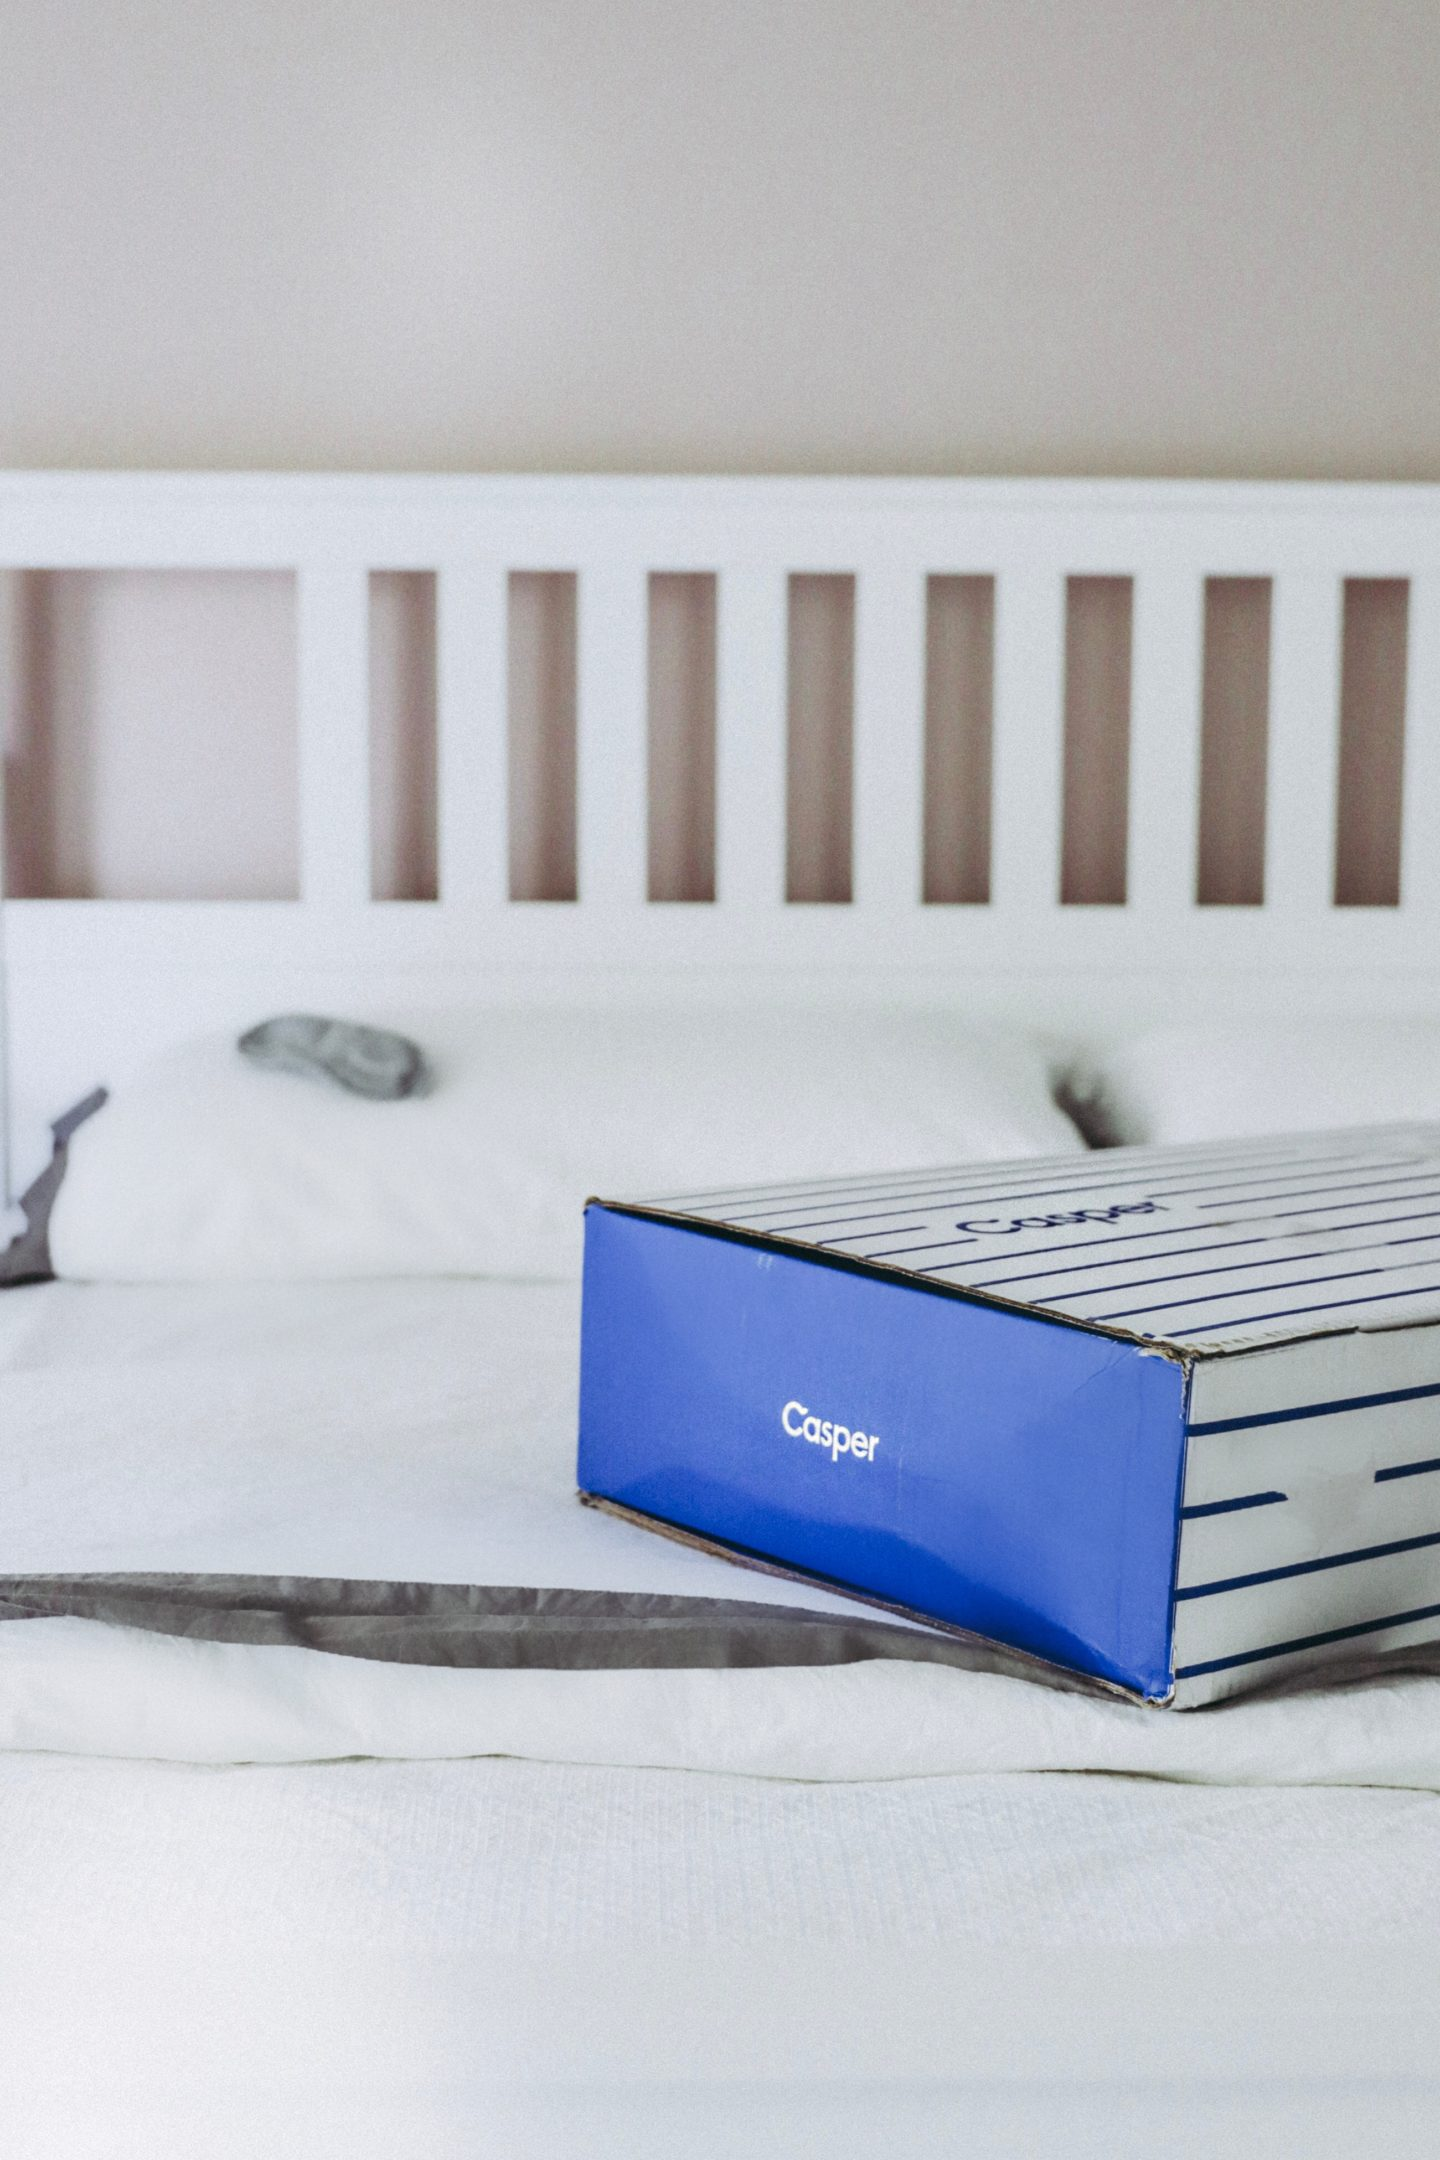 The Casual Free: 4 Ways To Get More Sleep With Kids - Casper Pillows